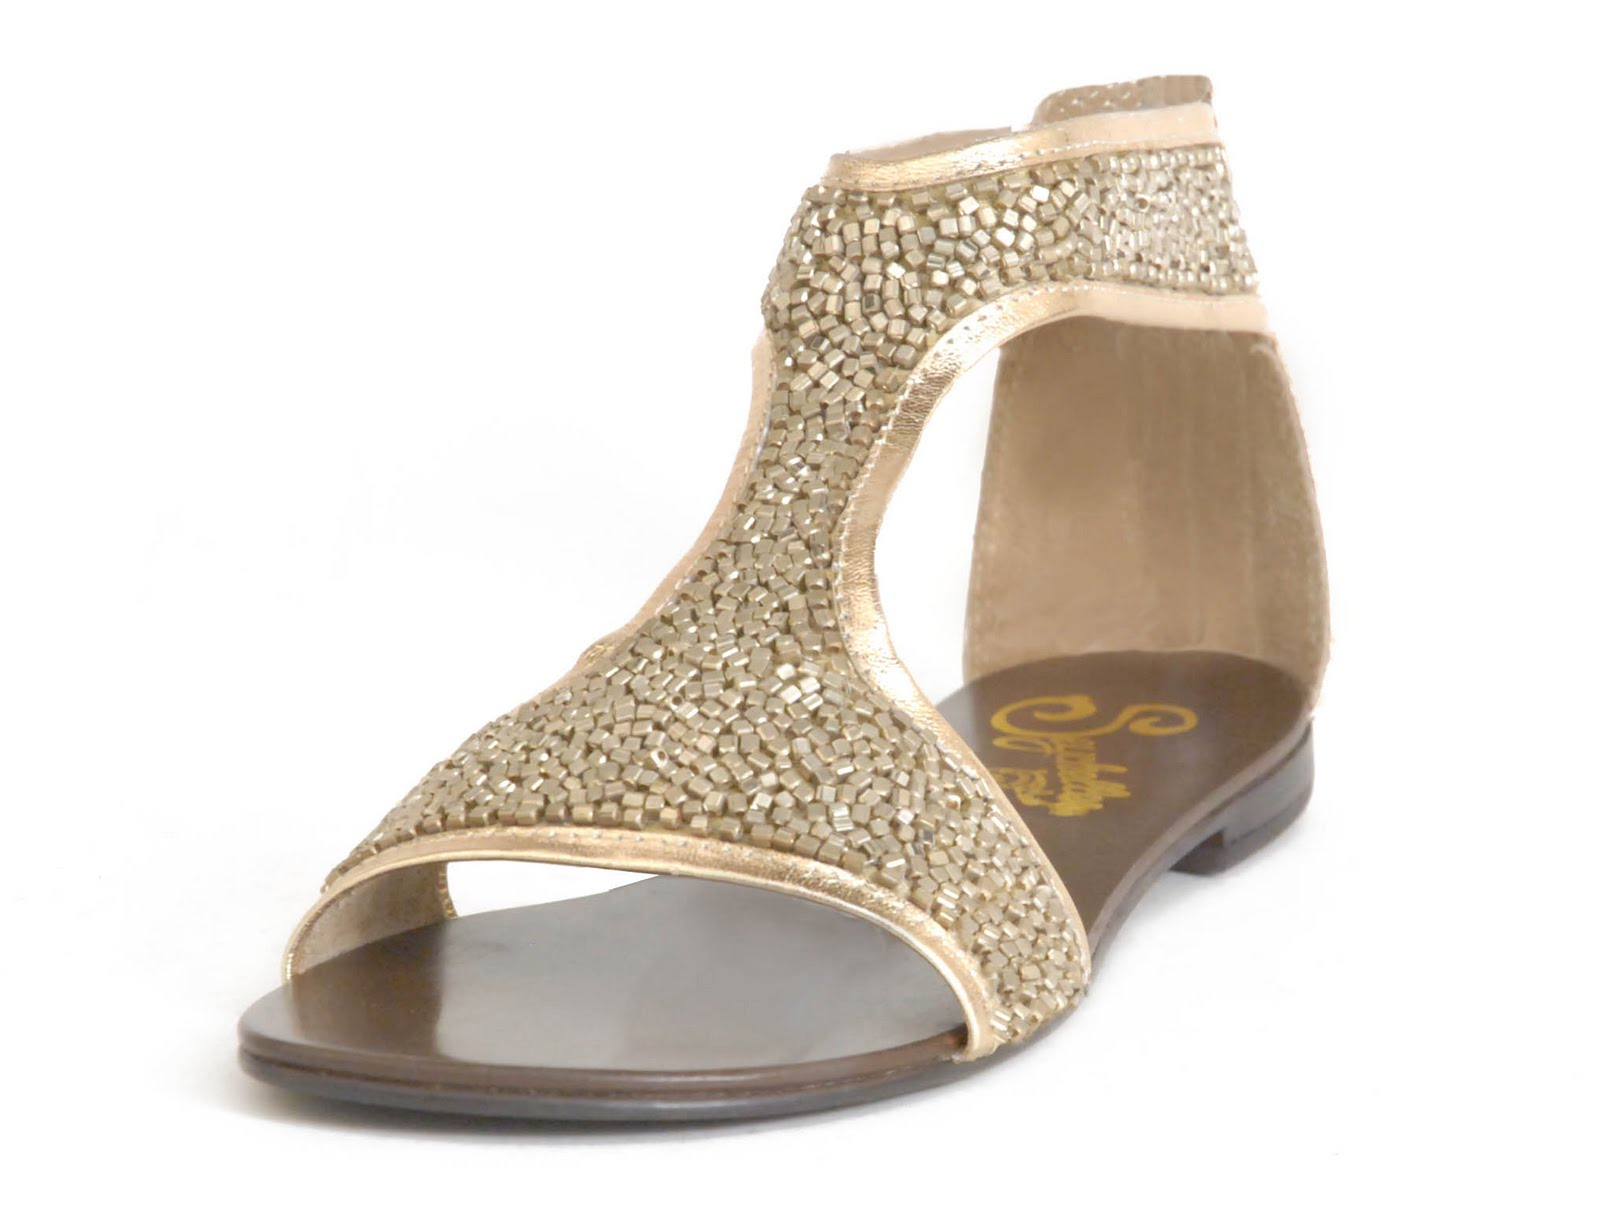 Amazing While Accessories Designer Yvonne Kon&233 Specializes In Midheel Sandals And